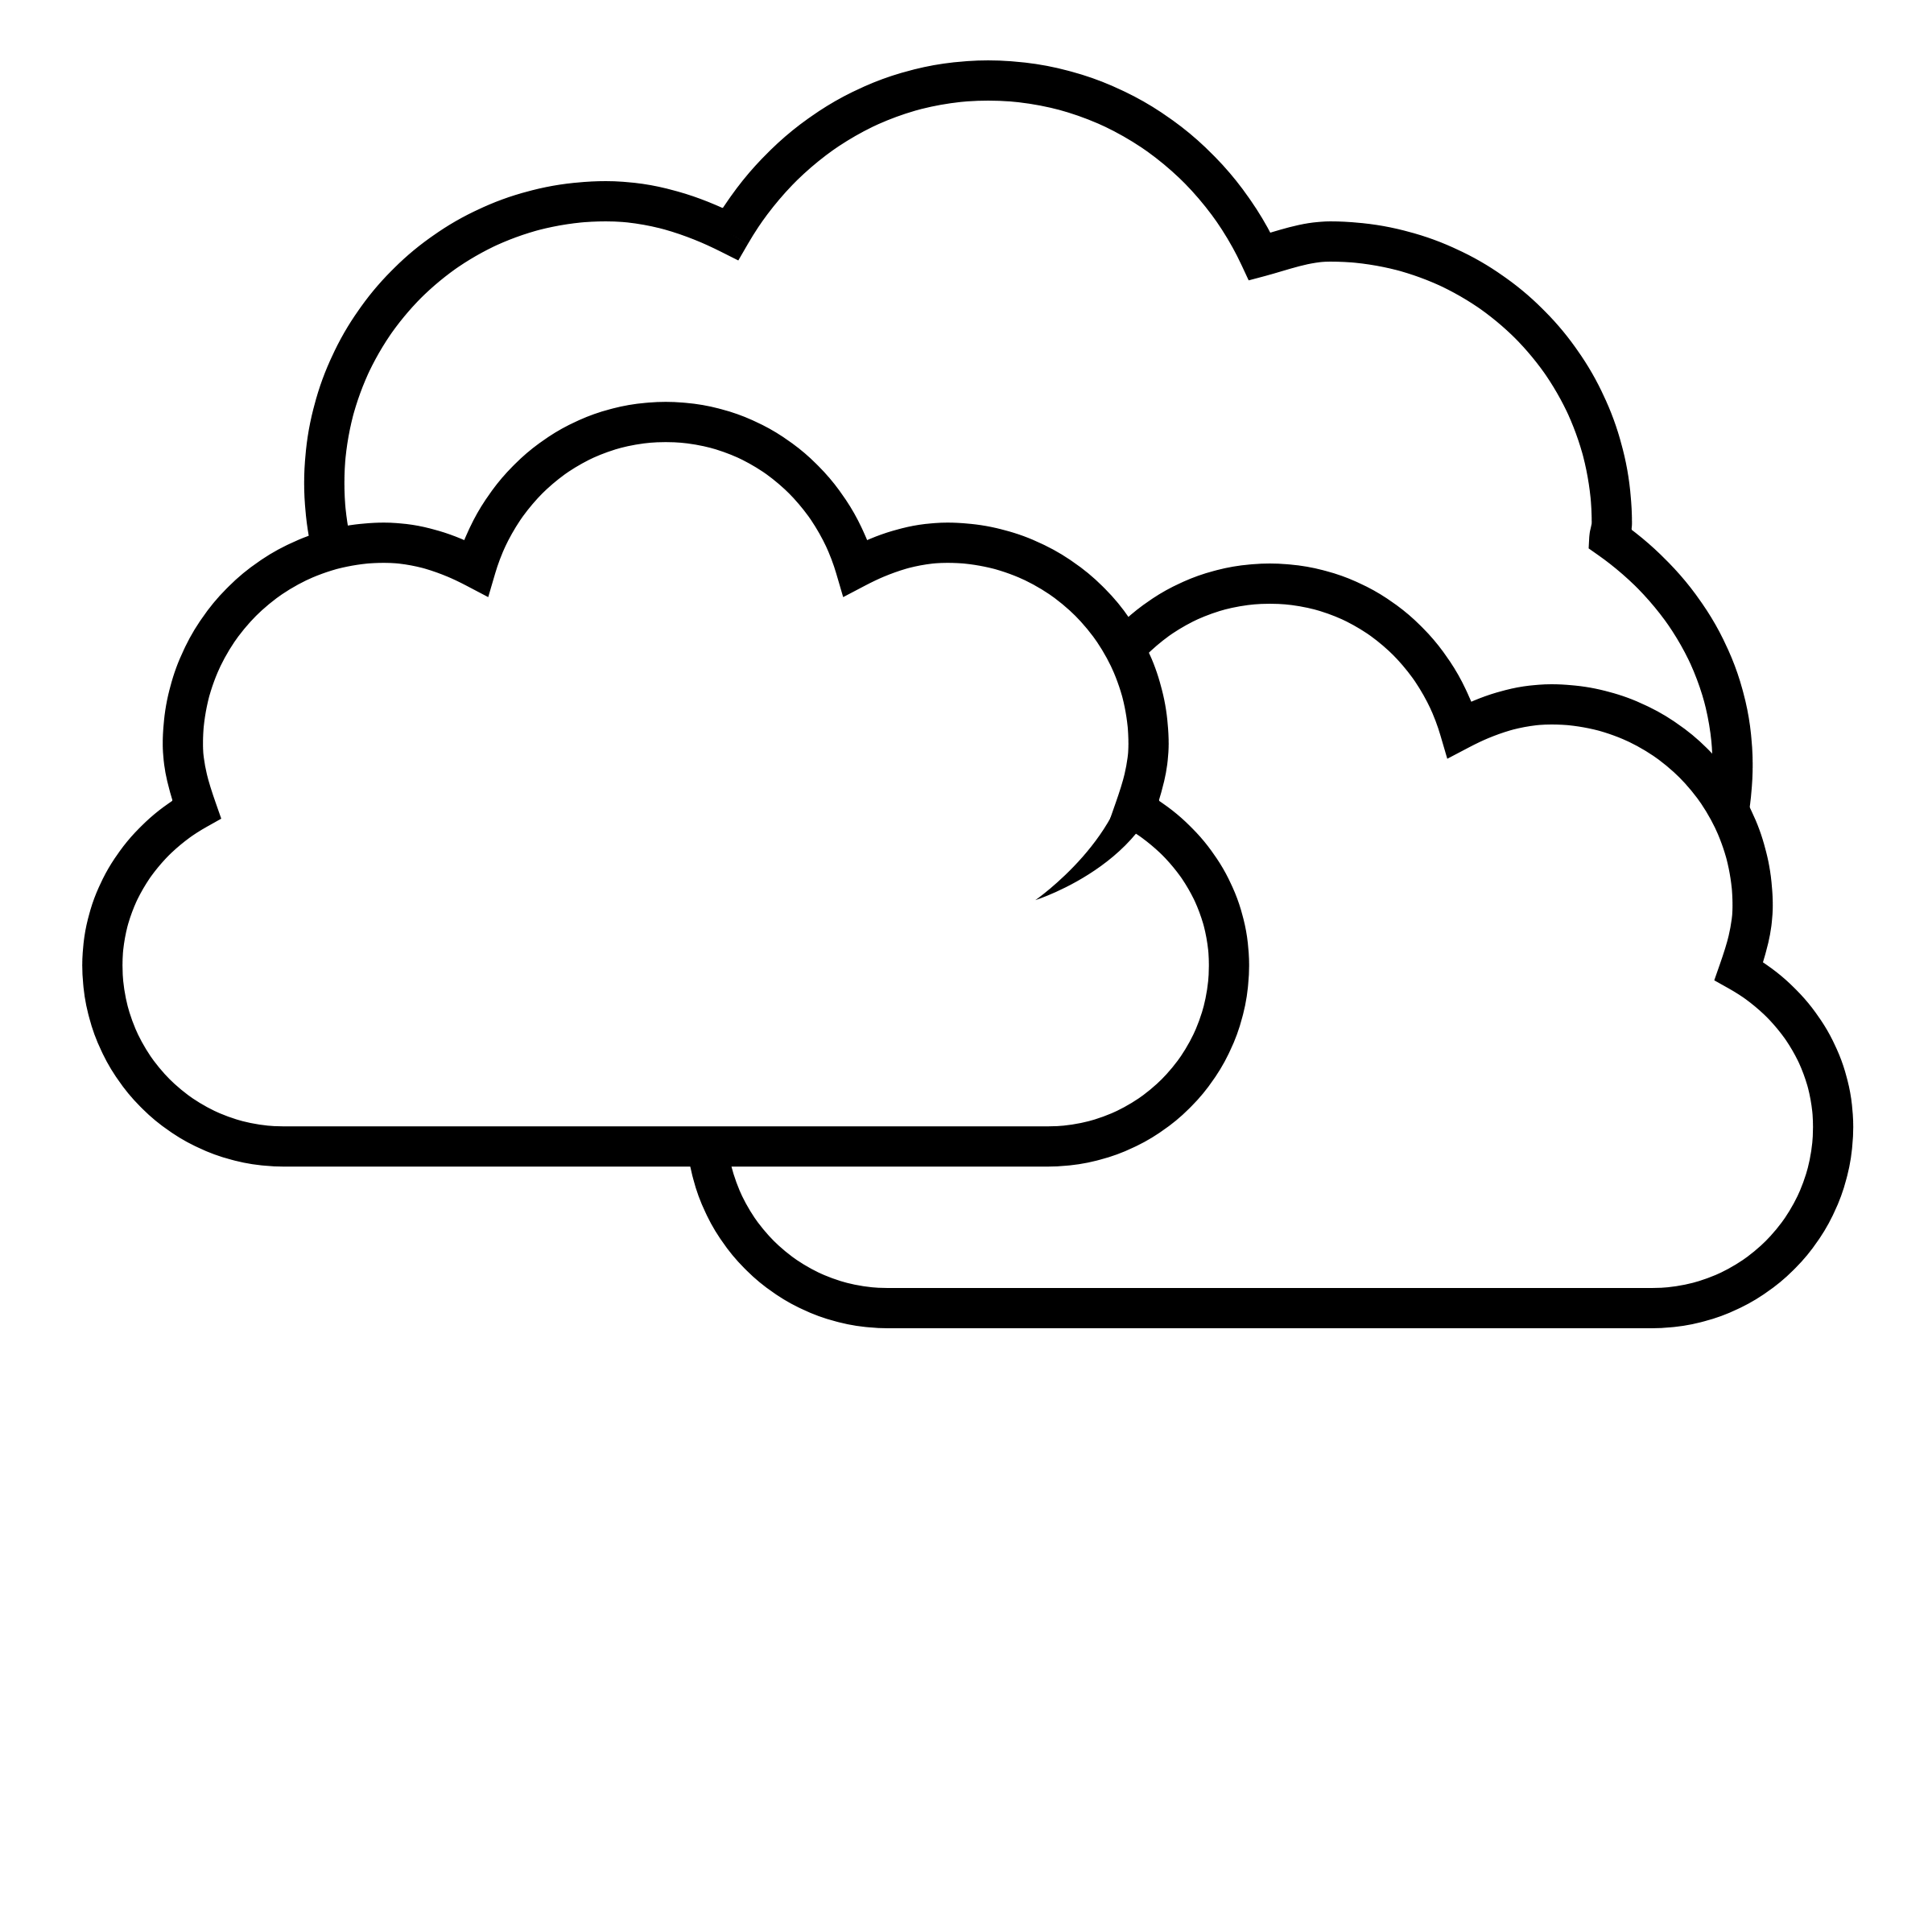 Partly Cloudy Clipart Black And White-partly cloudy clipart black and white-3